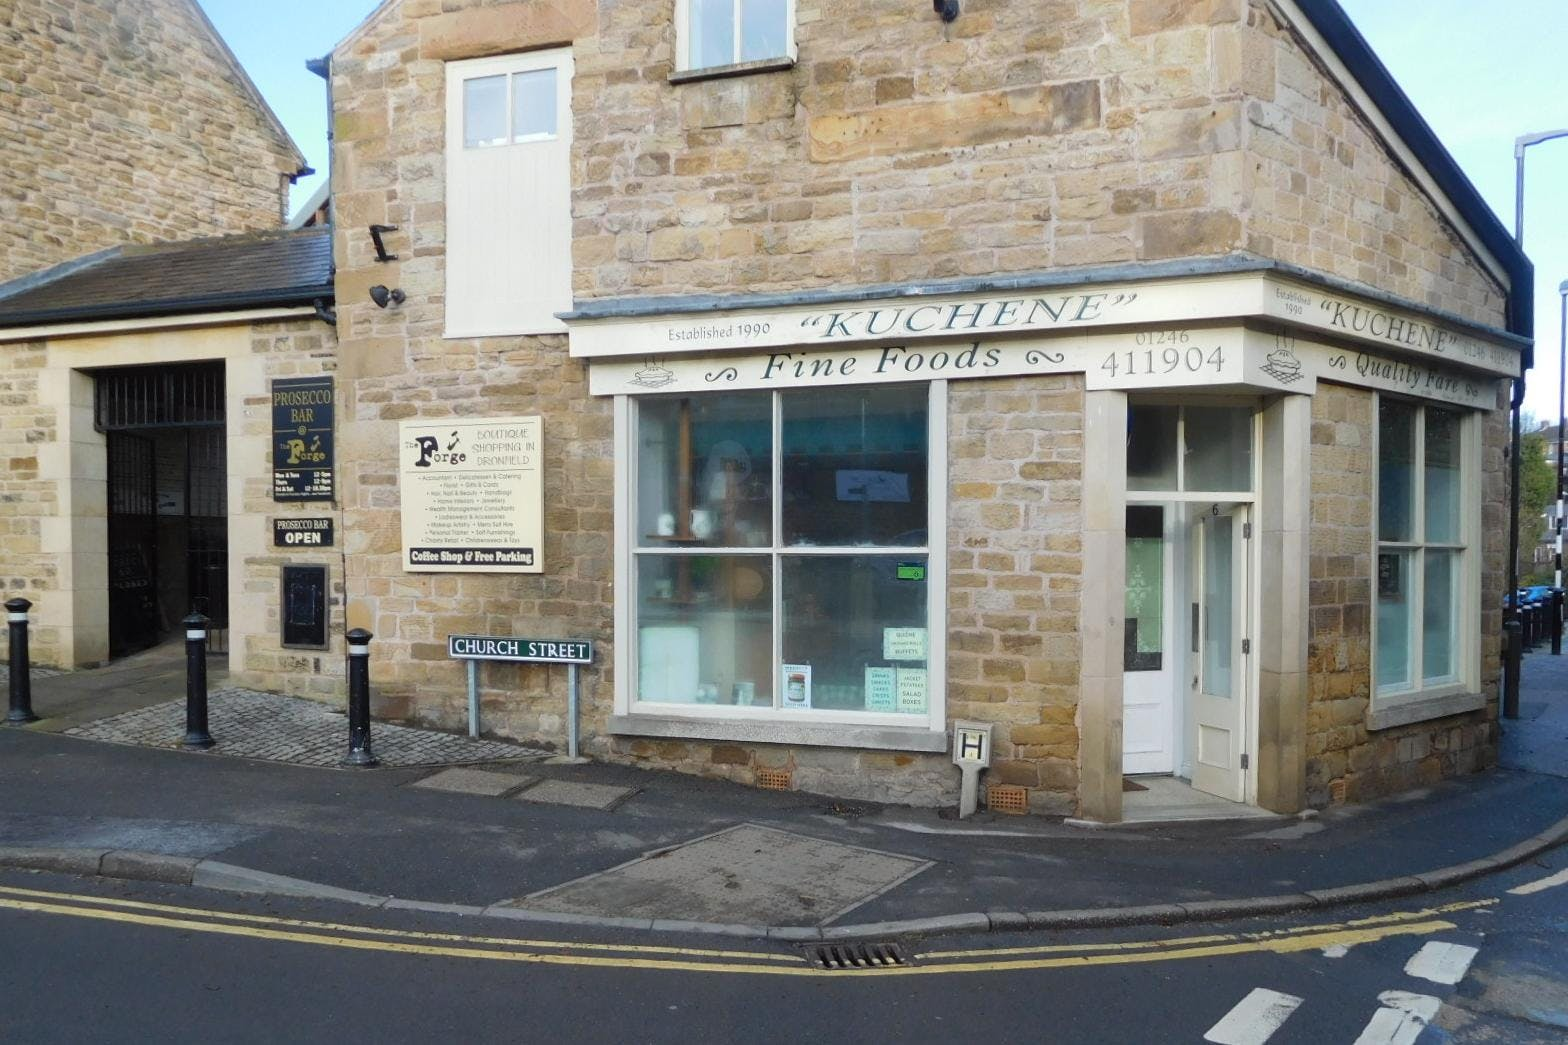 The Forge Shopping Centre, Church Street, Dronfield, Investments For Sale - DSCN6170.JPG